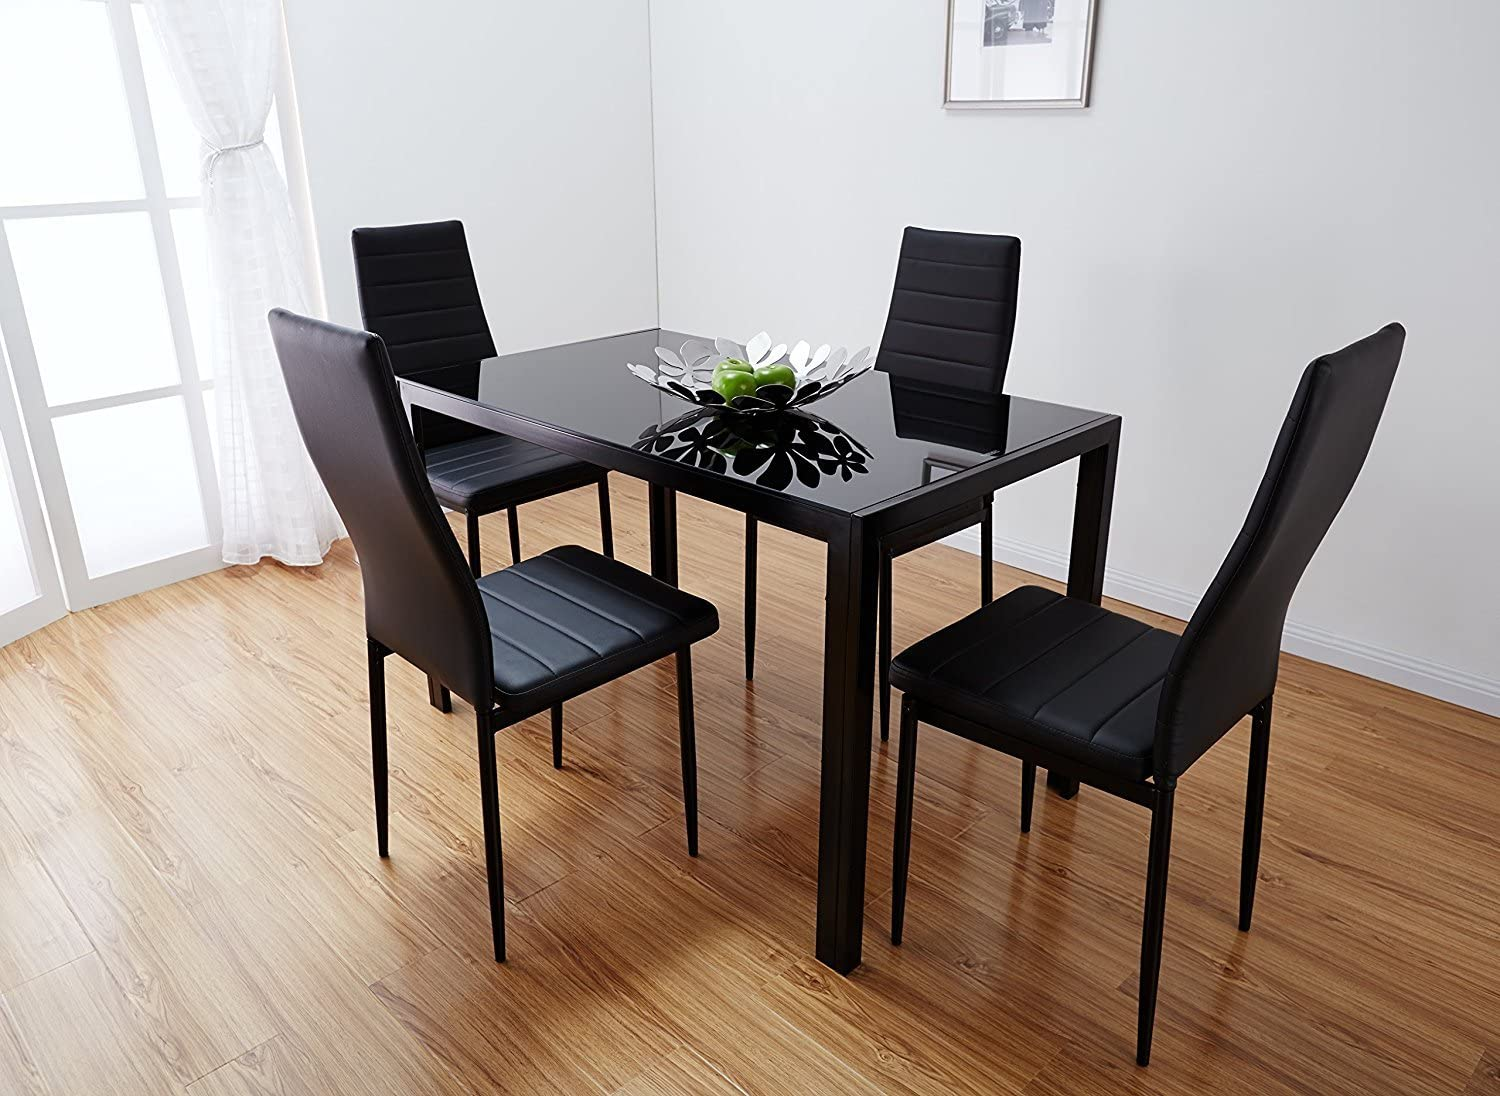 Bonnlo Modern 5 Pieces Dining Table Set Glass Top Dining Table and Chair Set for 4  sc 1 st  Amazon.com & Table u0026 Chair Sets | Amazon.com